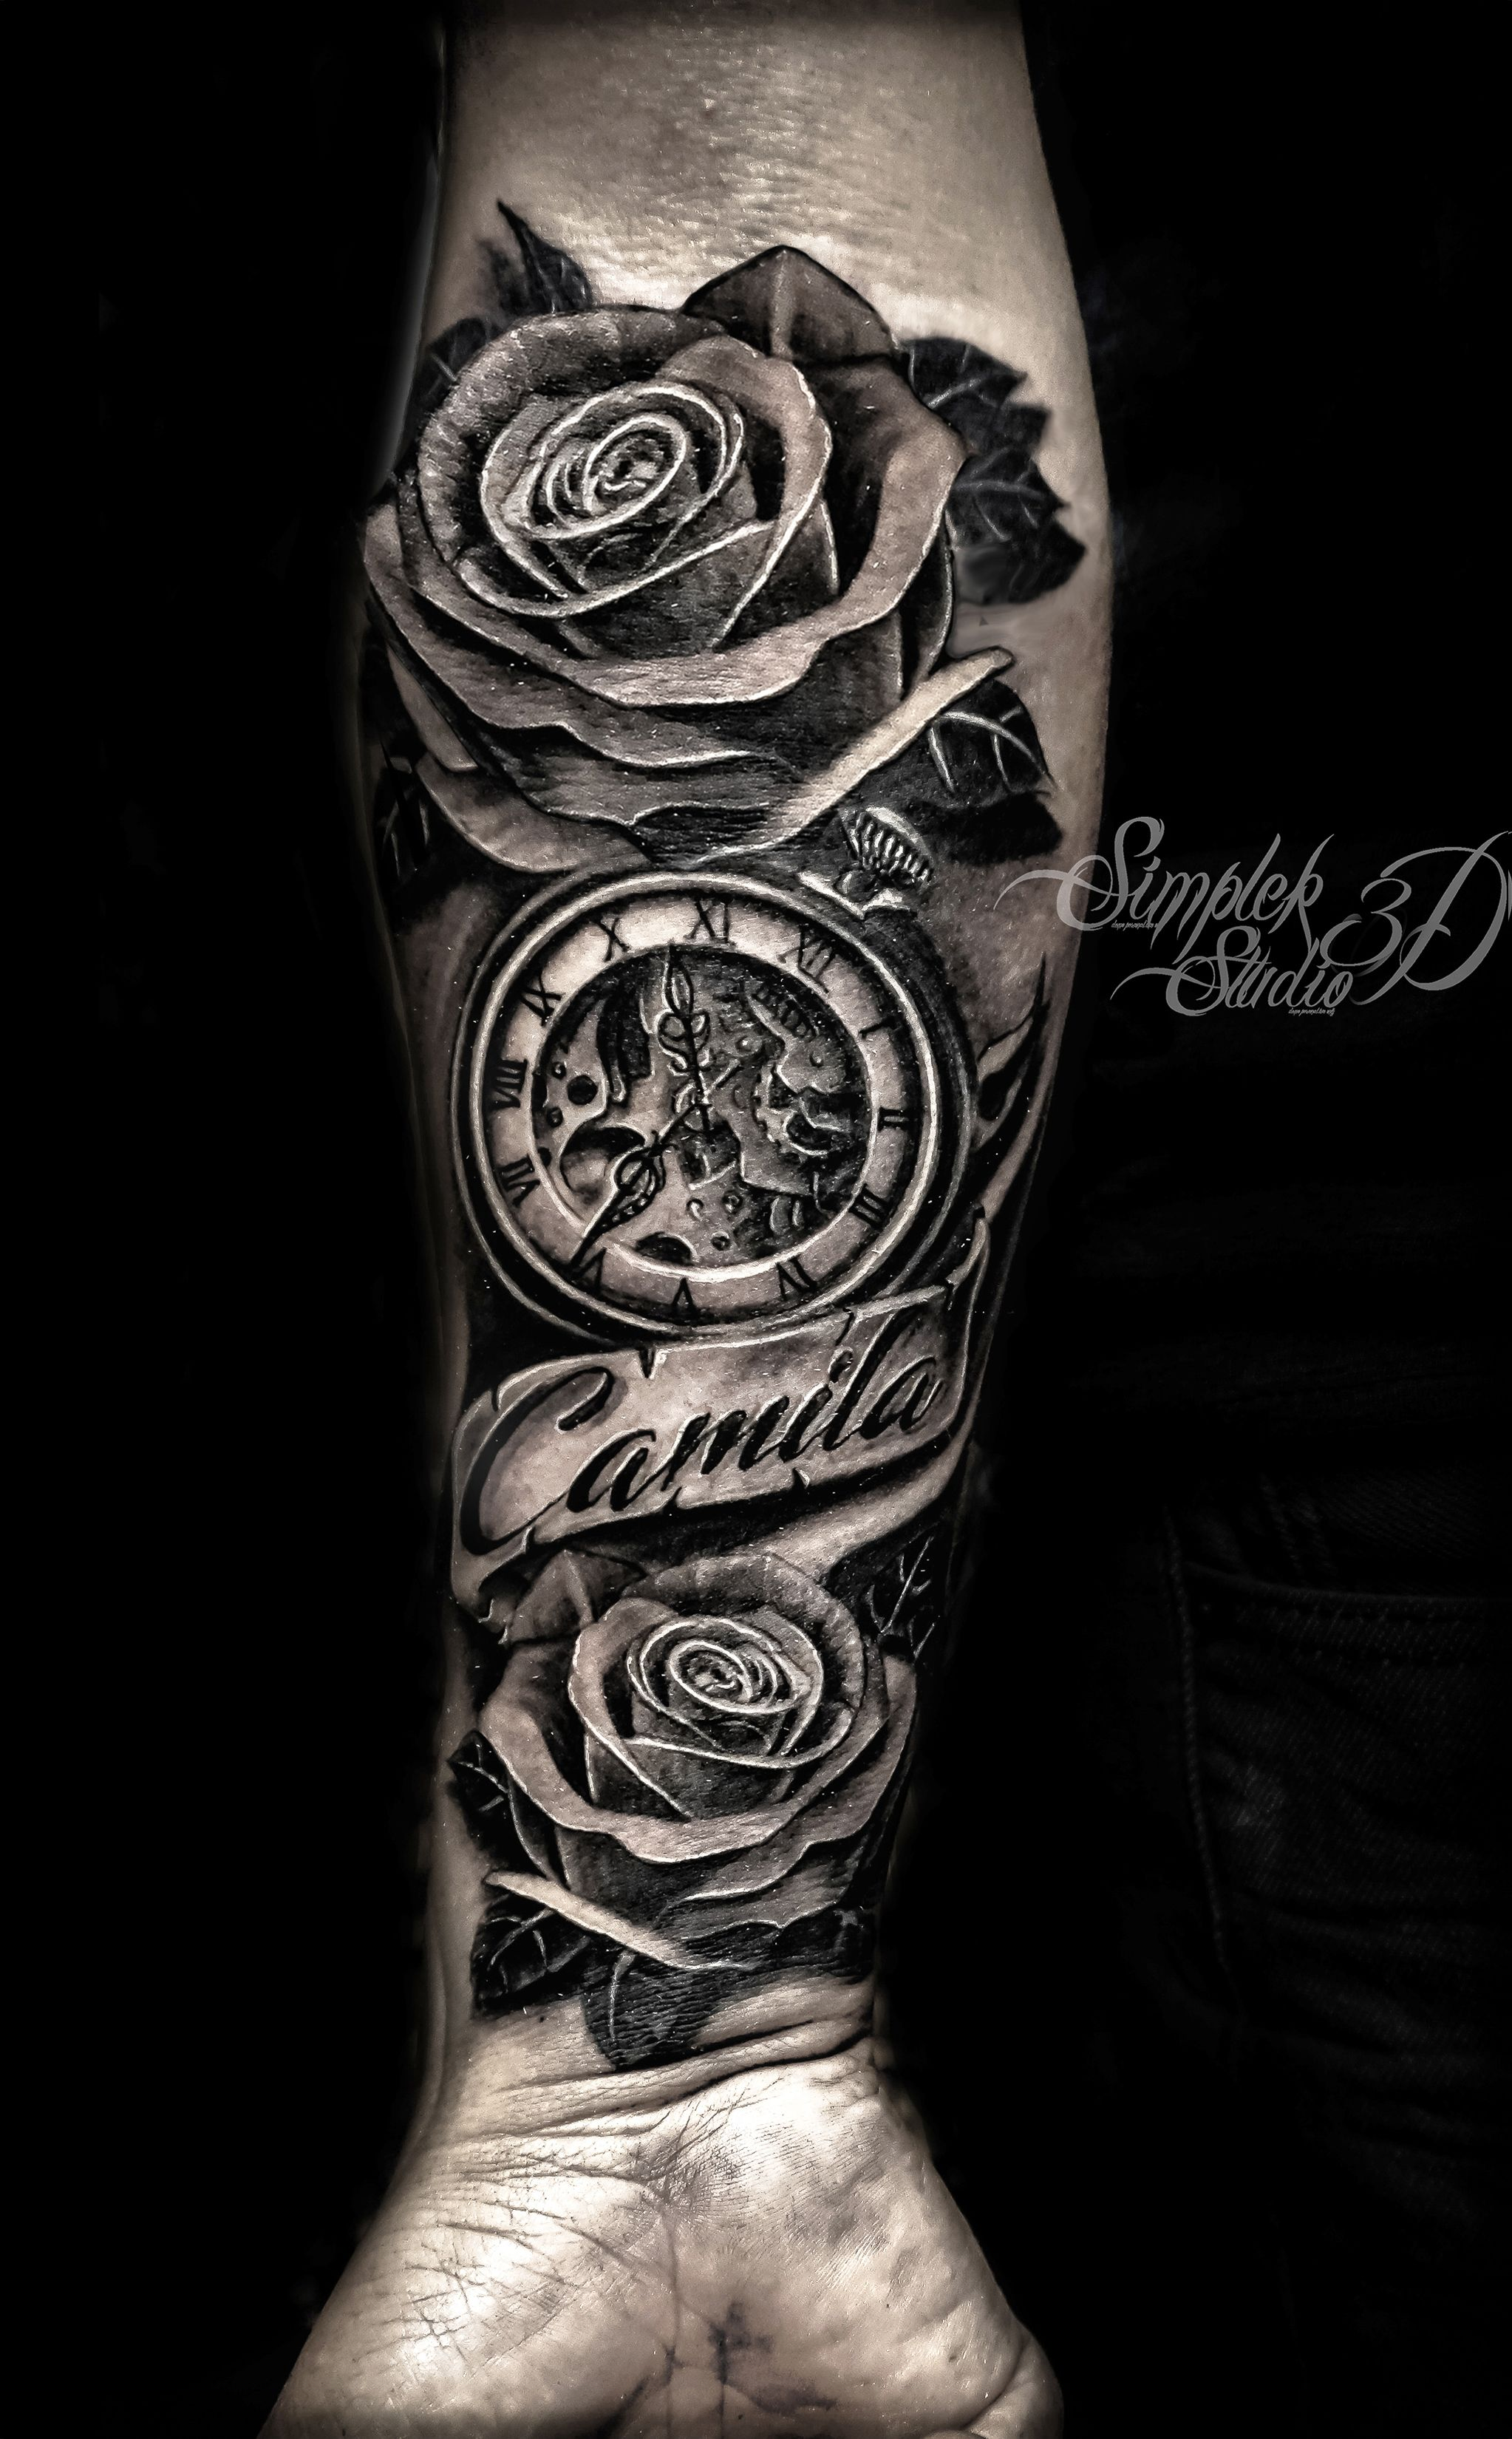 Roses And Clocks Banners Personalized Forearm Tattoo Rose Tattoos For Men Rose Tattoos Rose Tattoo Sleeve